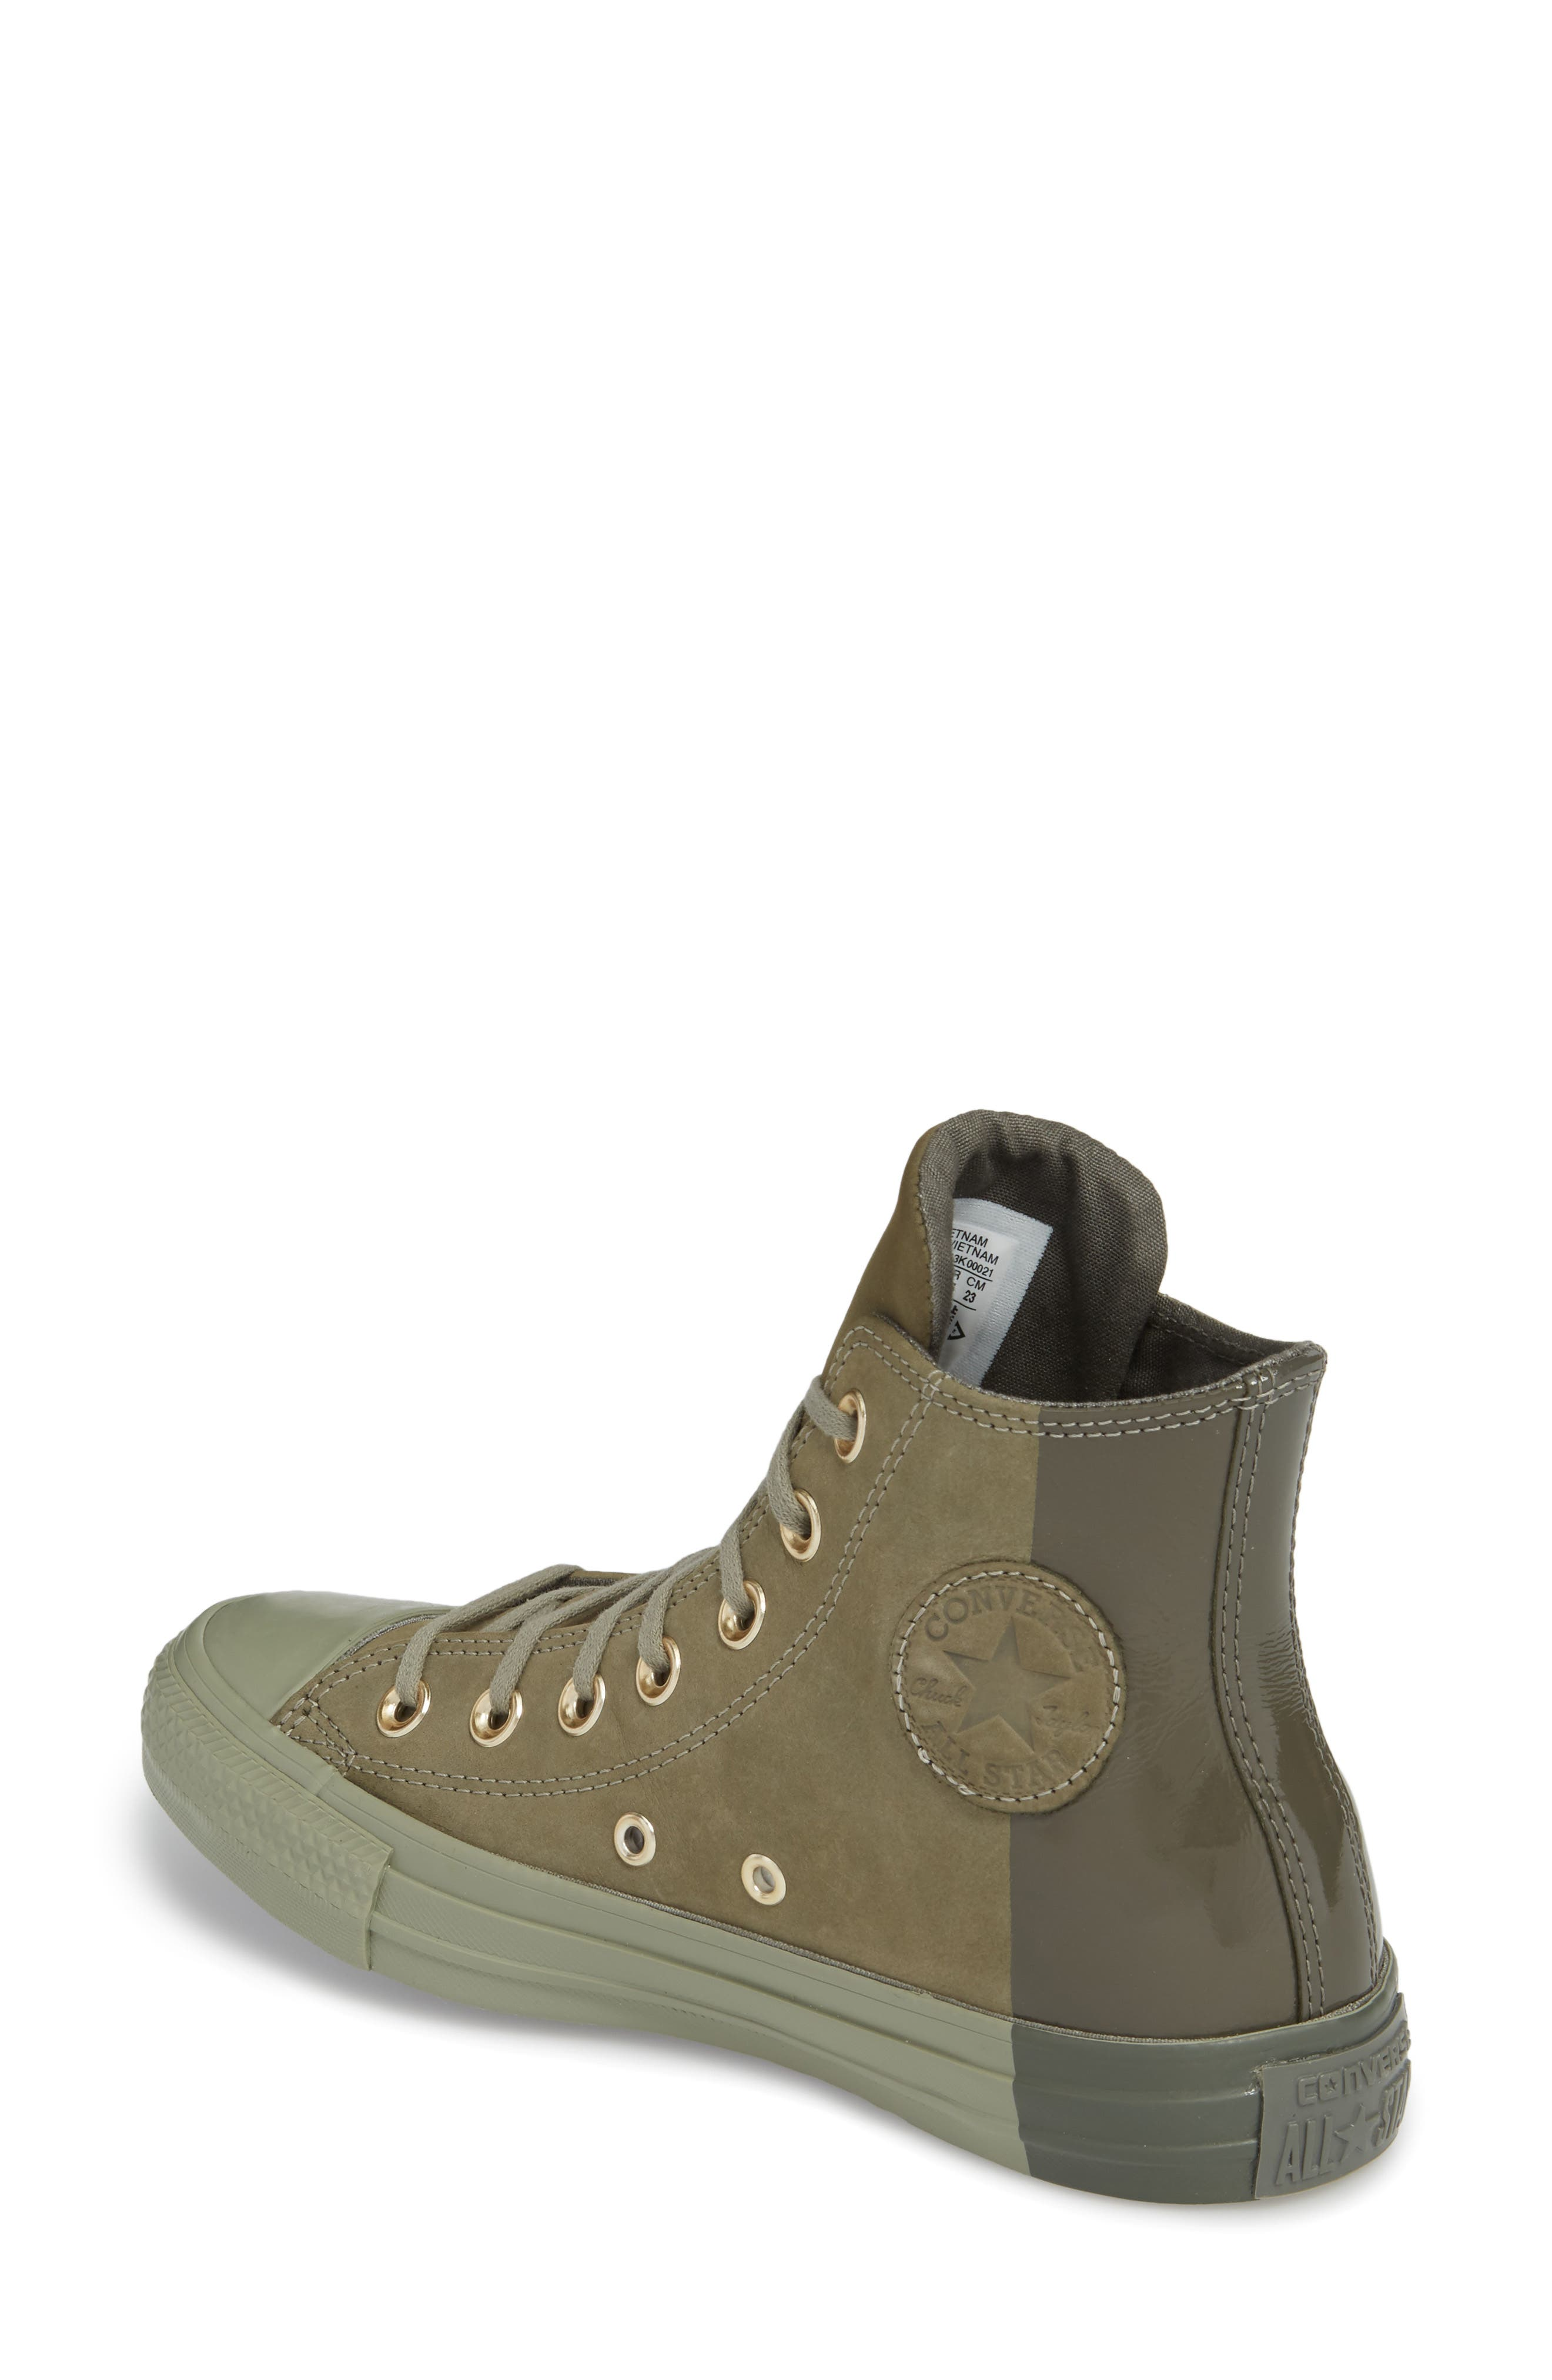 Chuck Taylor<sup>®</sup> All Star<sup>®</sup> High Top Sneaker,                             Alternate thumbnail 2, color,                             024